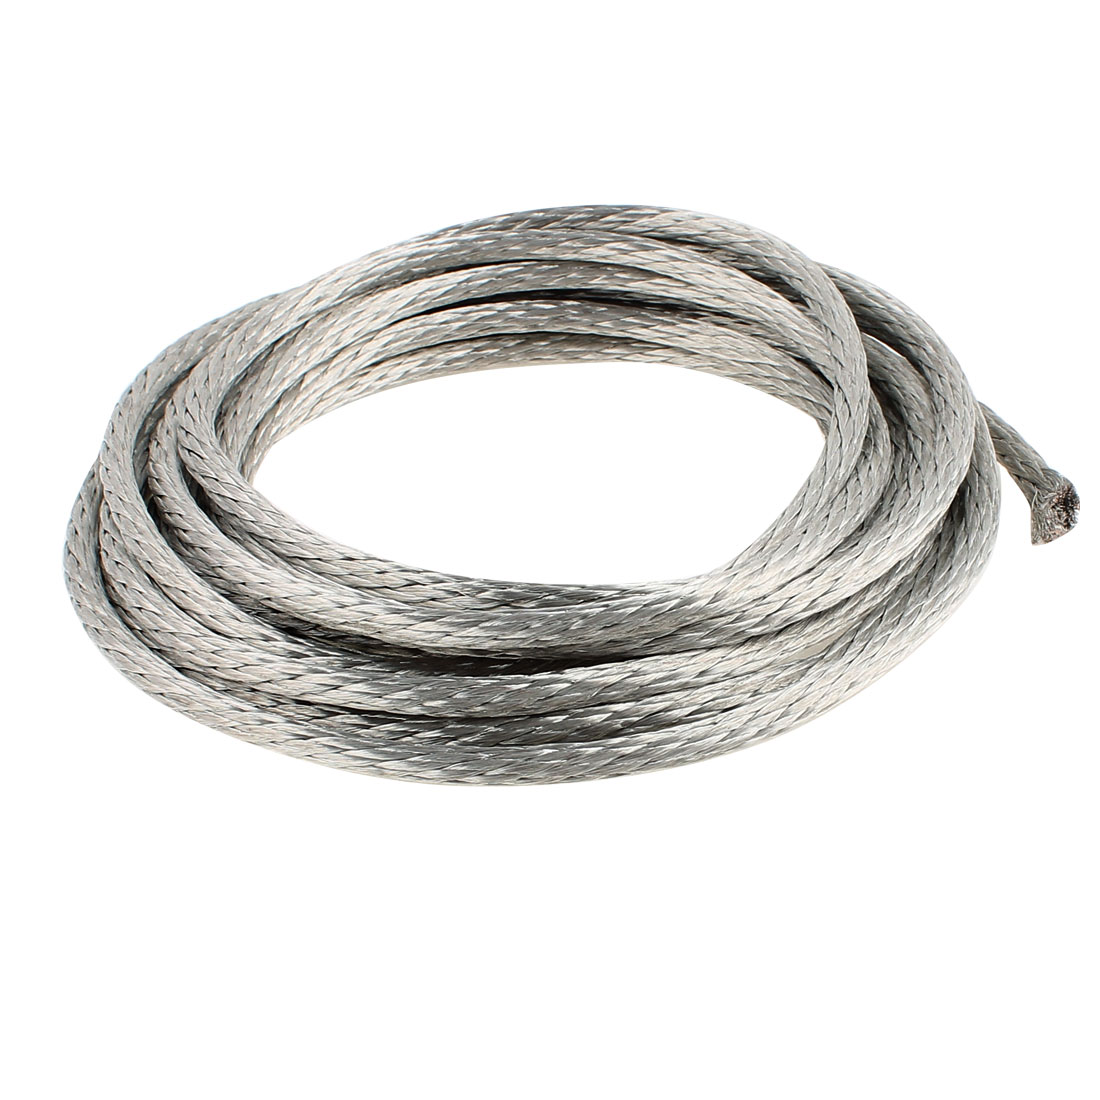 16 Square Millimeter Thickness 2M Length Tubular Bare Tined Braided Copper Wire